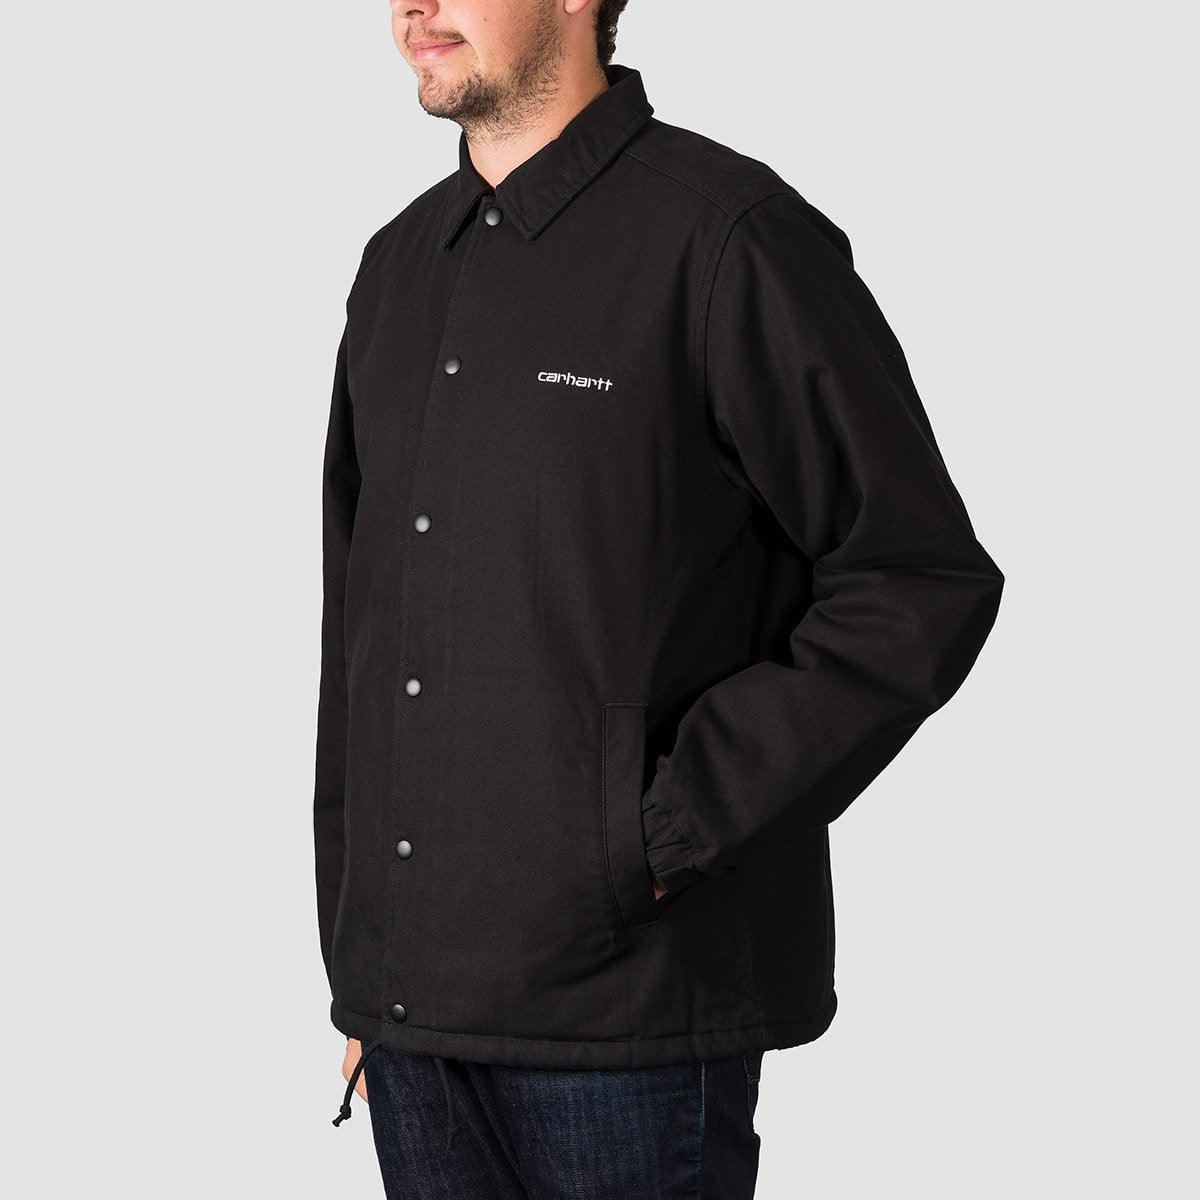 Carhartt WIP Canvas Coach Jacket Black/White - Clothing